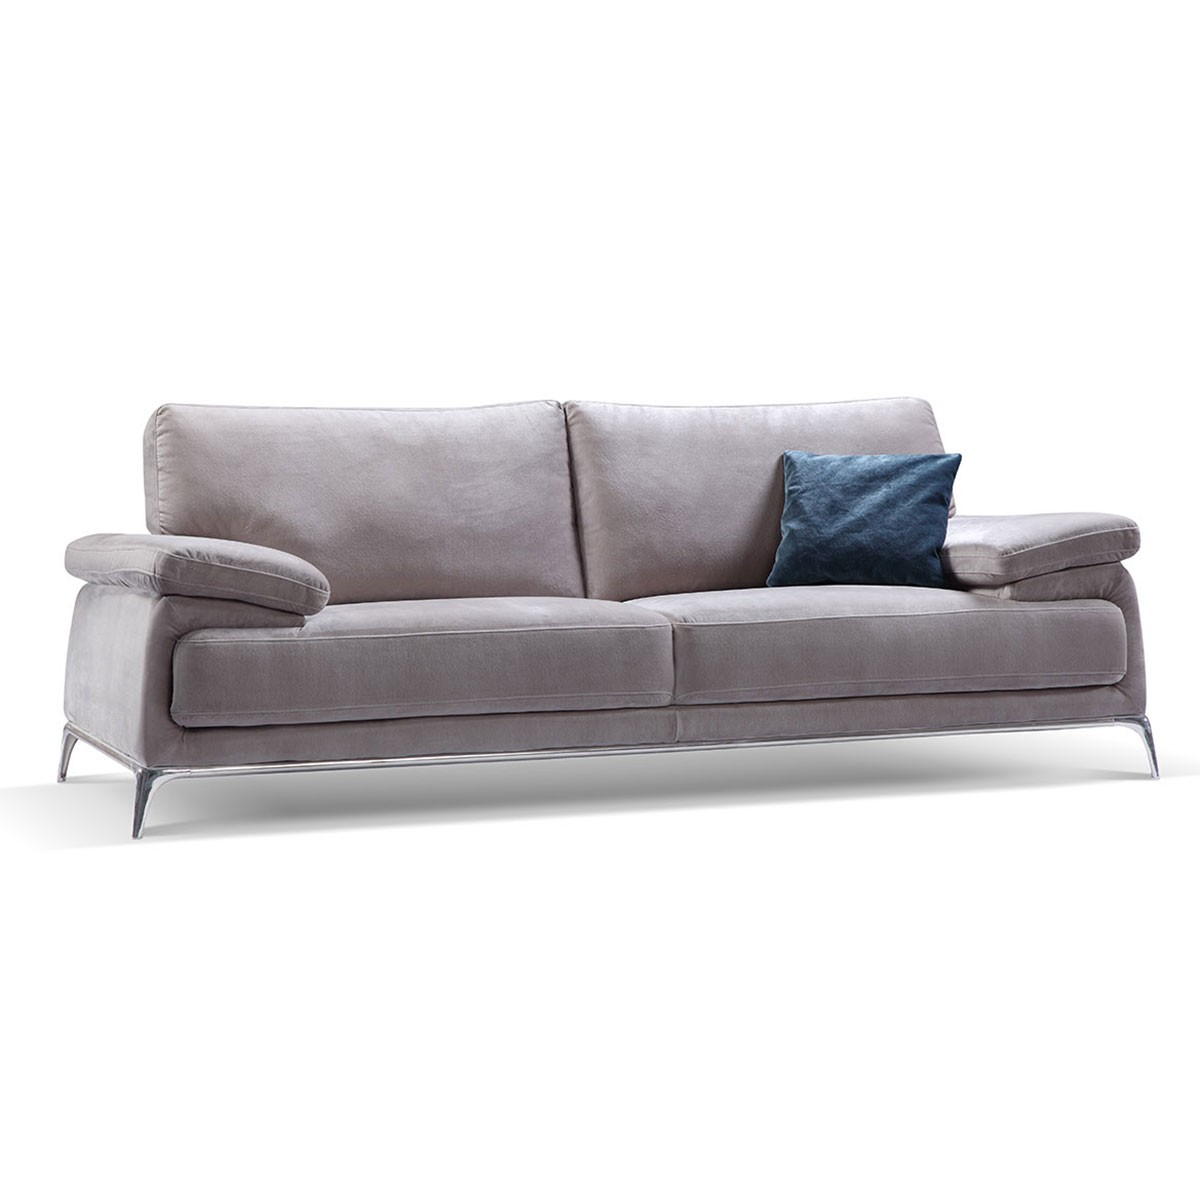 Fabric 3 Seater Sofa With Pillows Grey Bo 605 2s Decoraport Canada